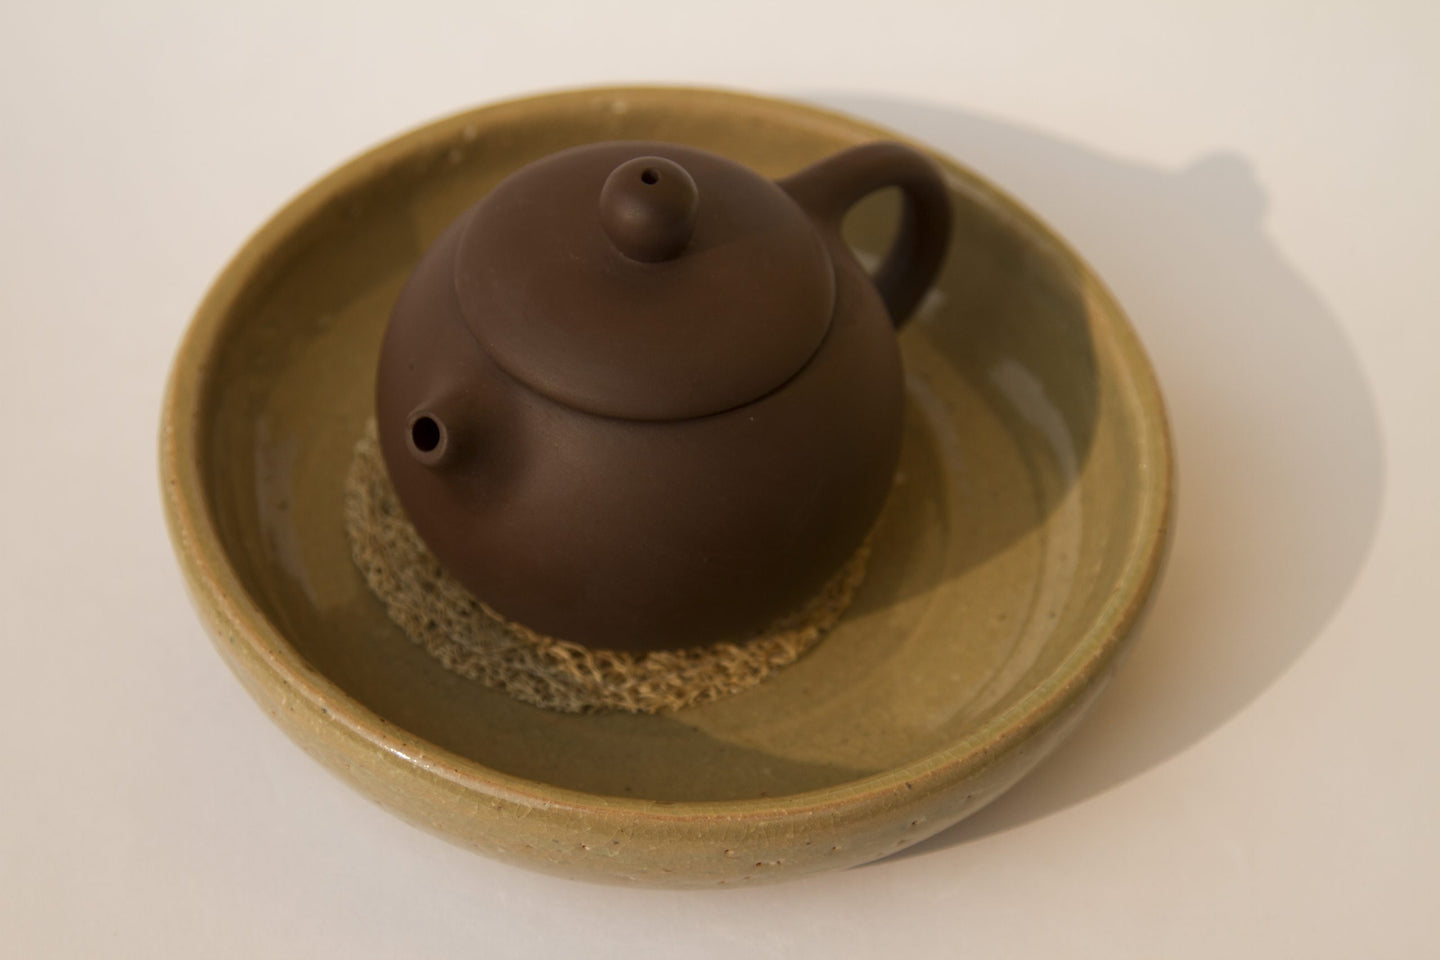 Xishi Tea Pot